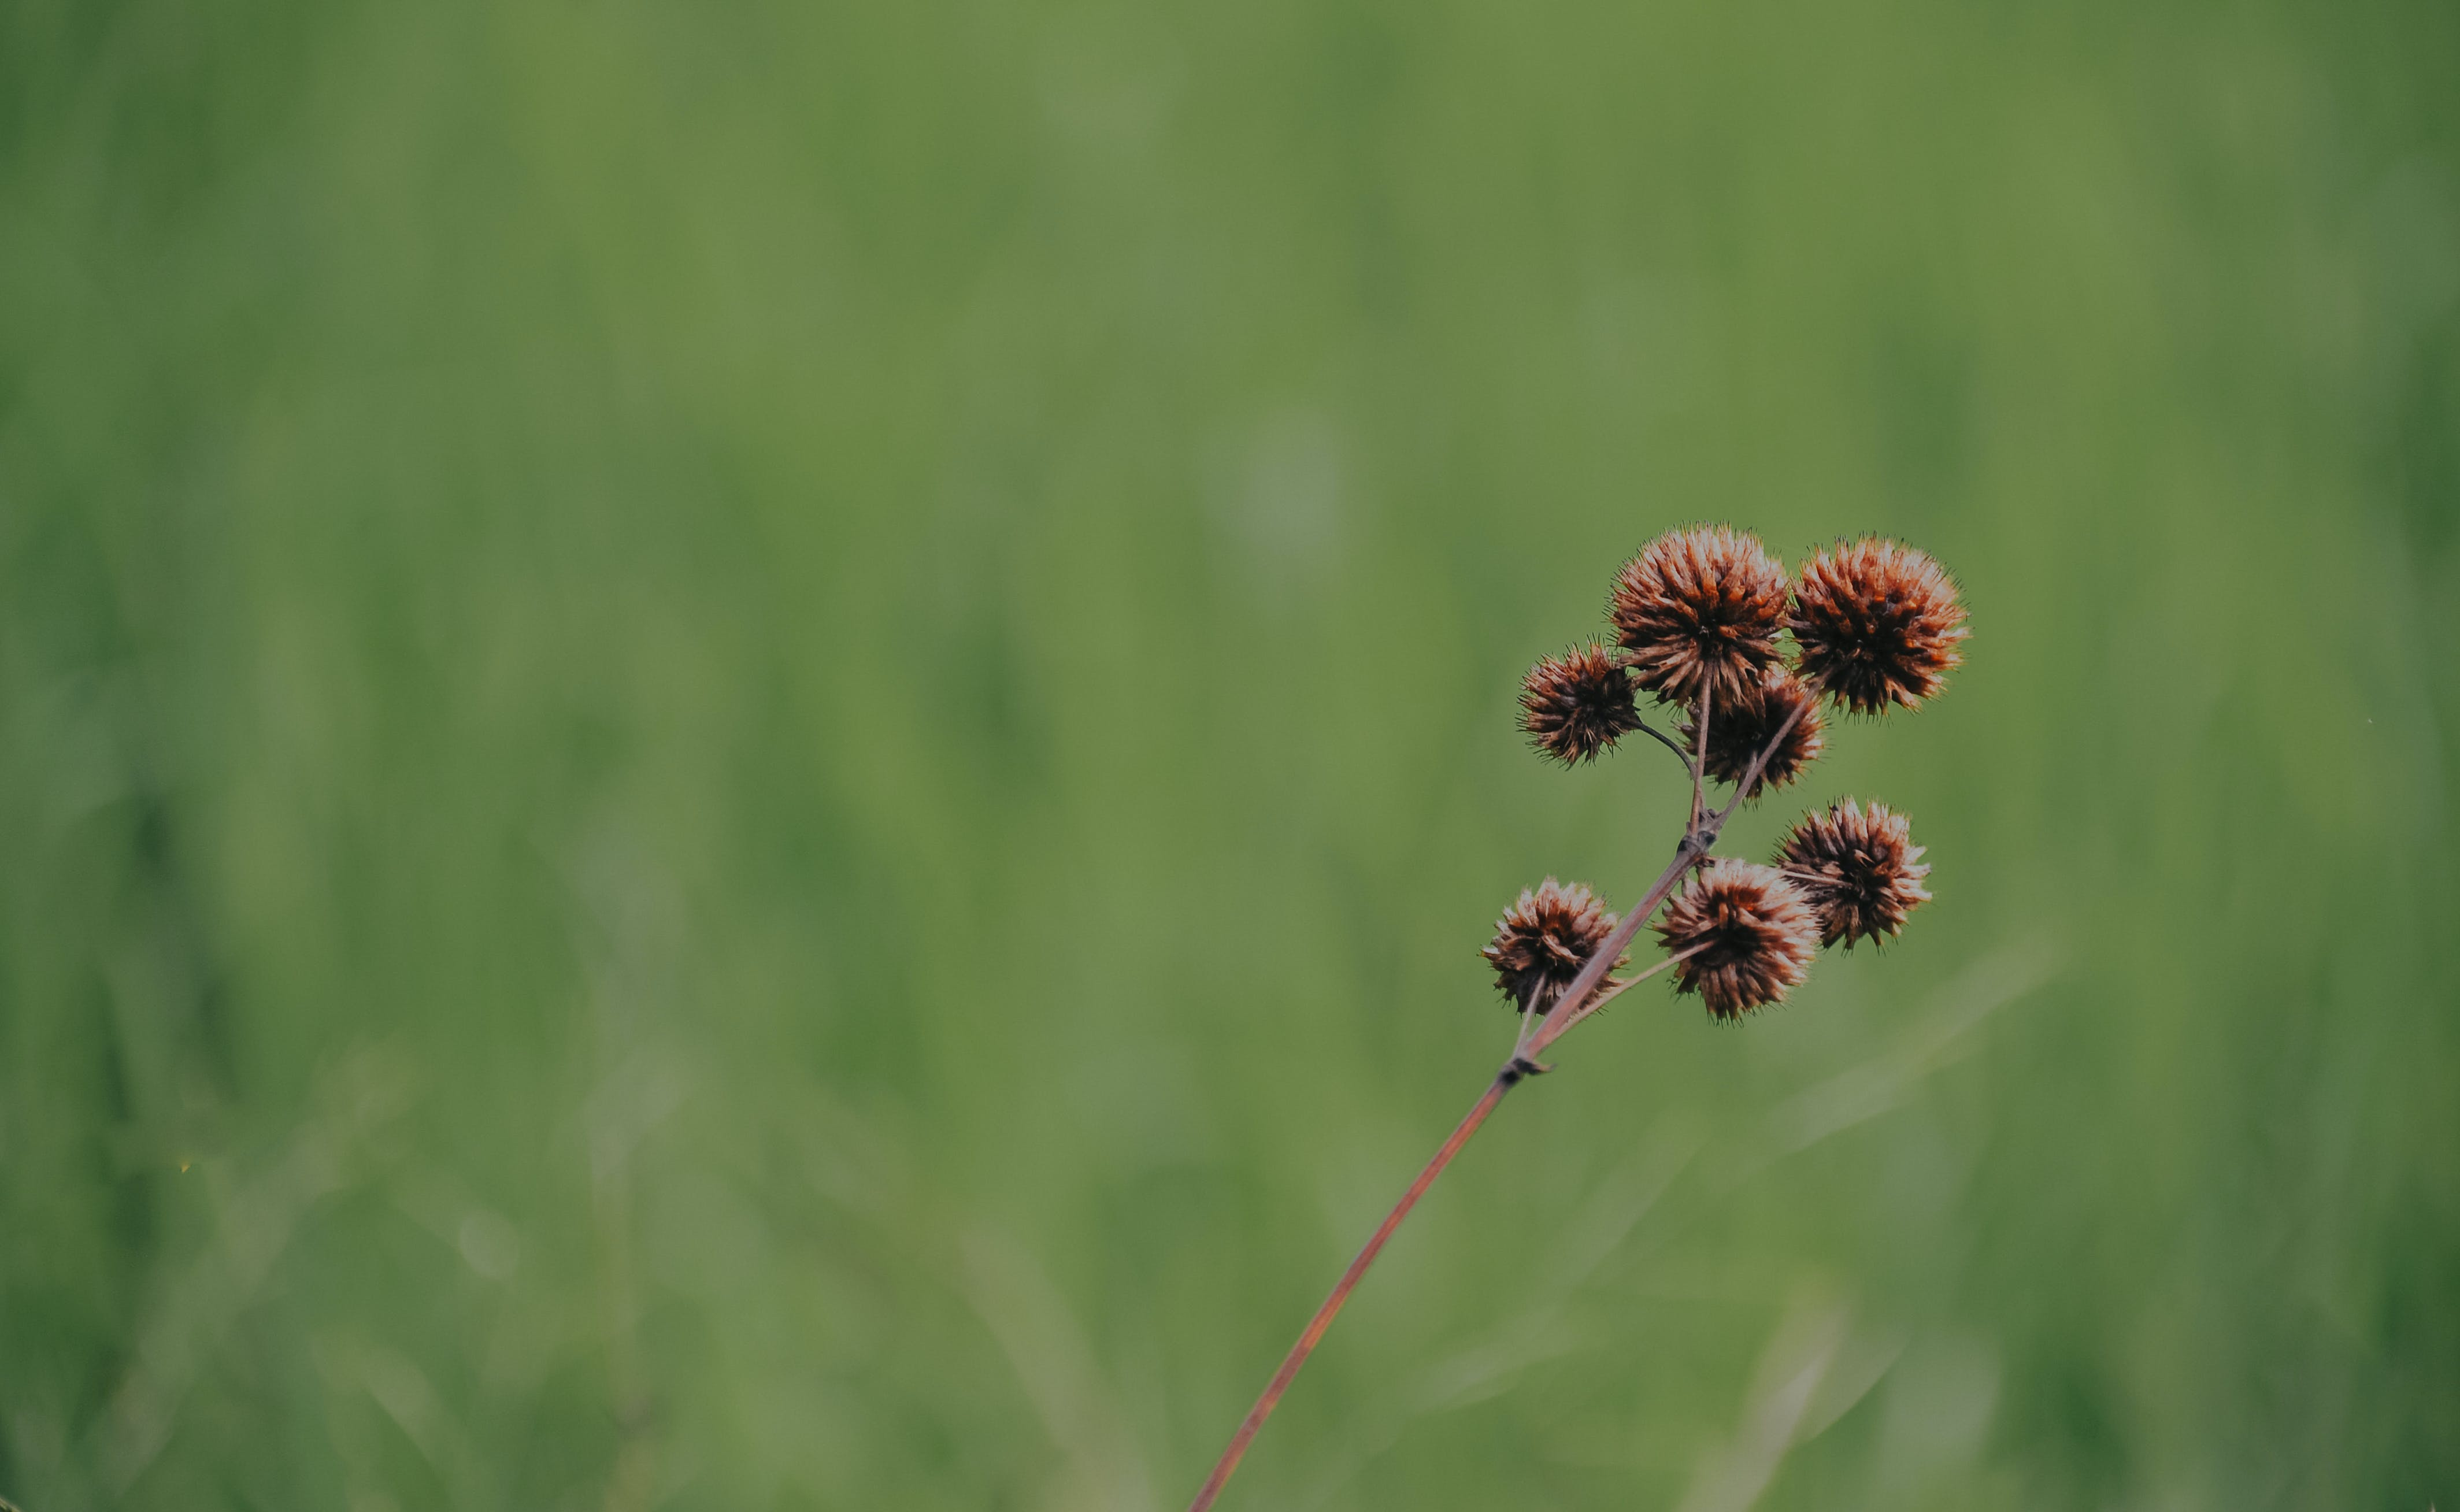 Brown Petaled Floweer